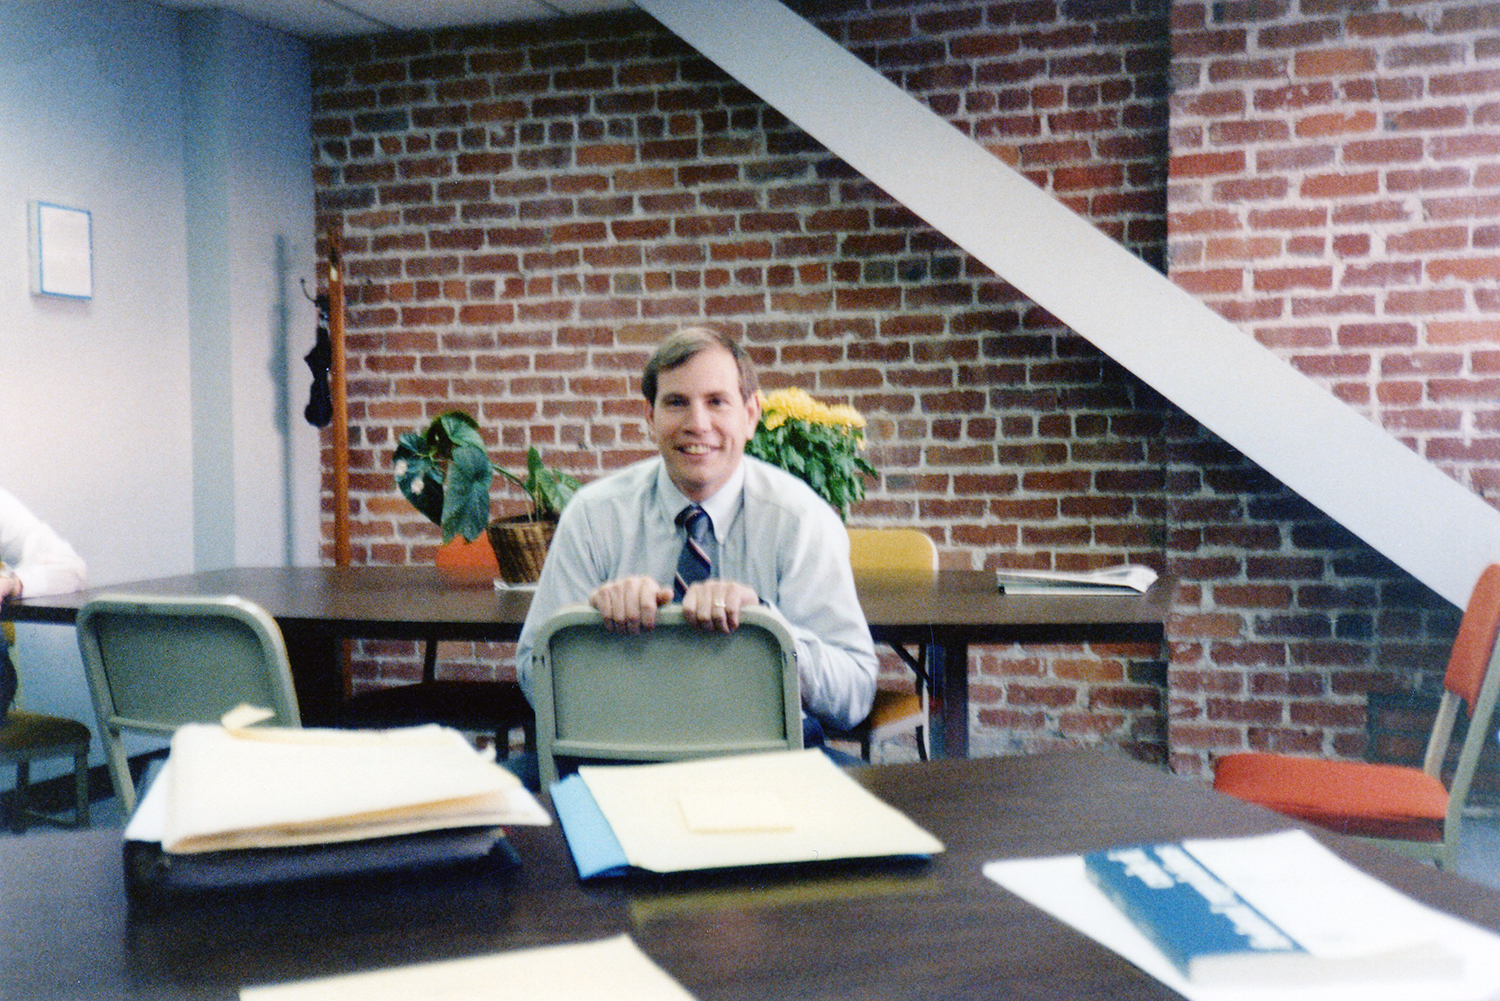 Elder Nielsen working in the San Francisco District Attorney's office for the Family Support Bureau